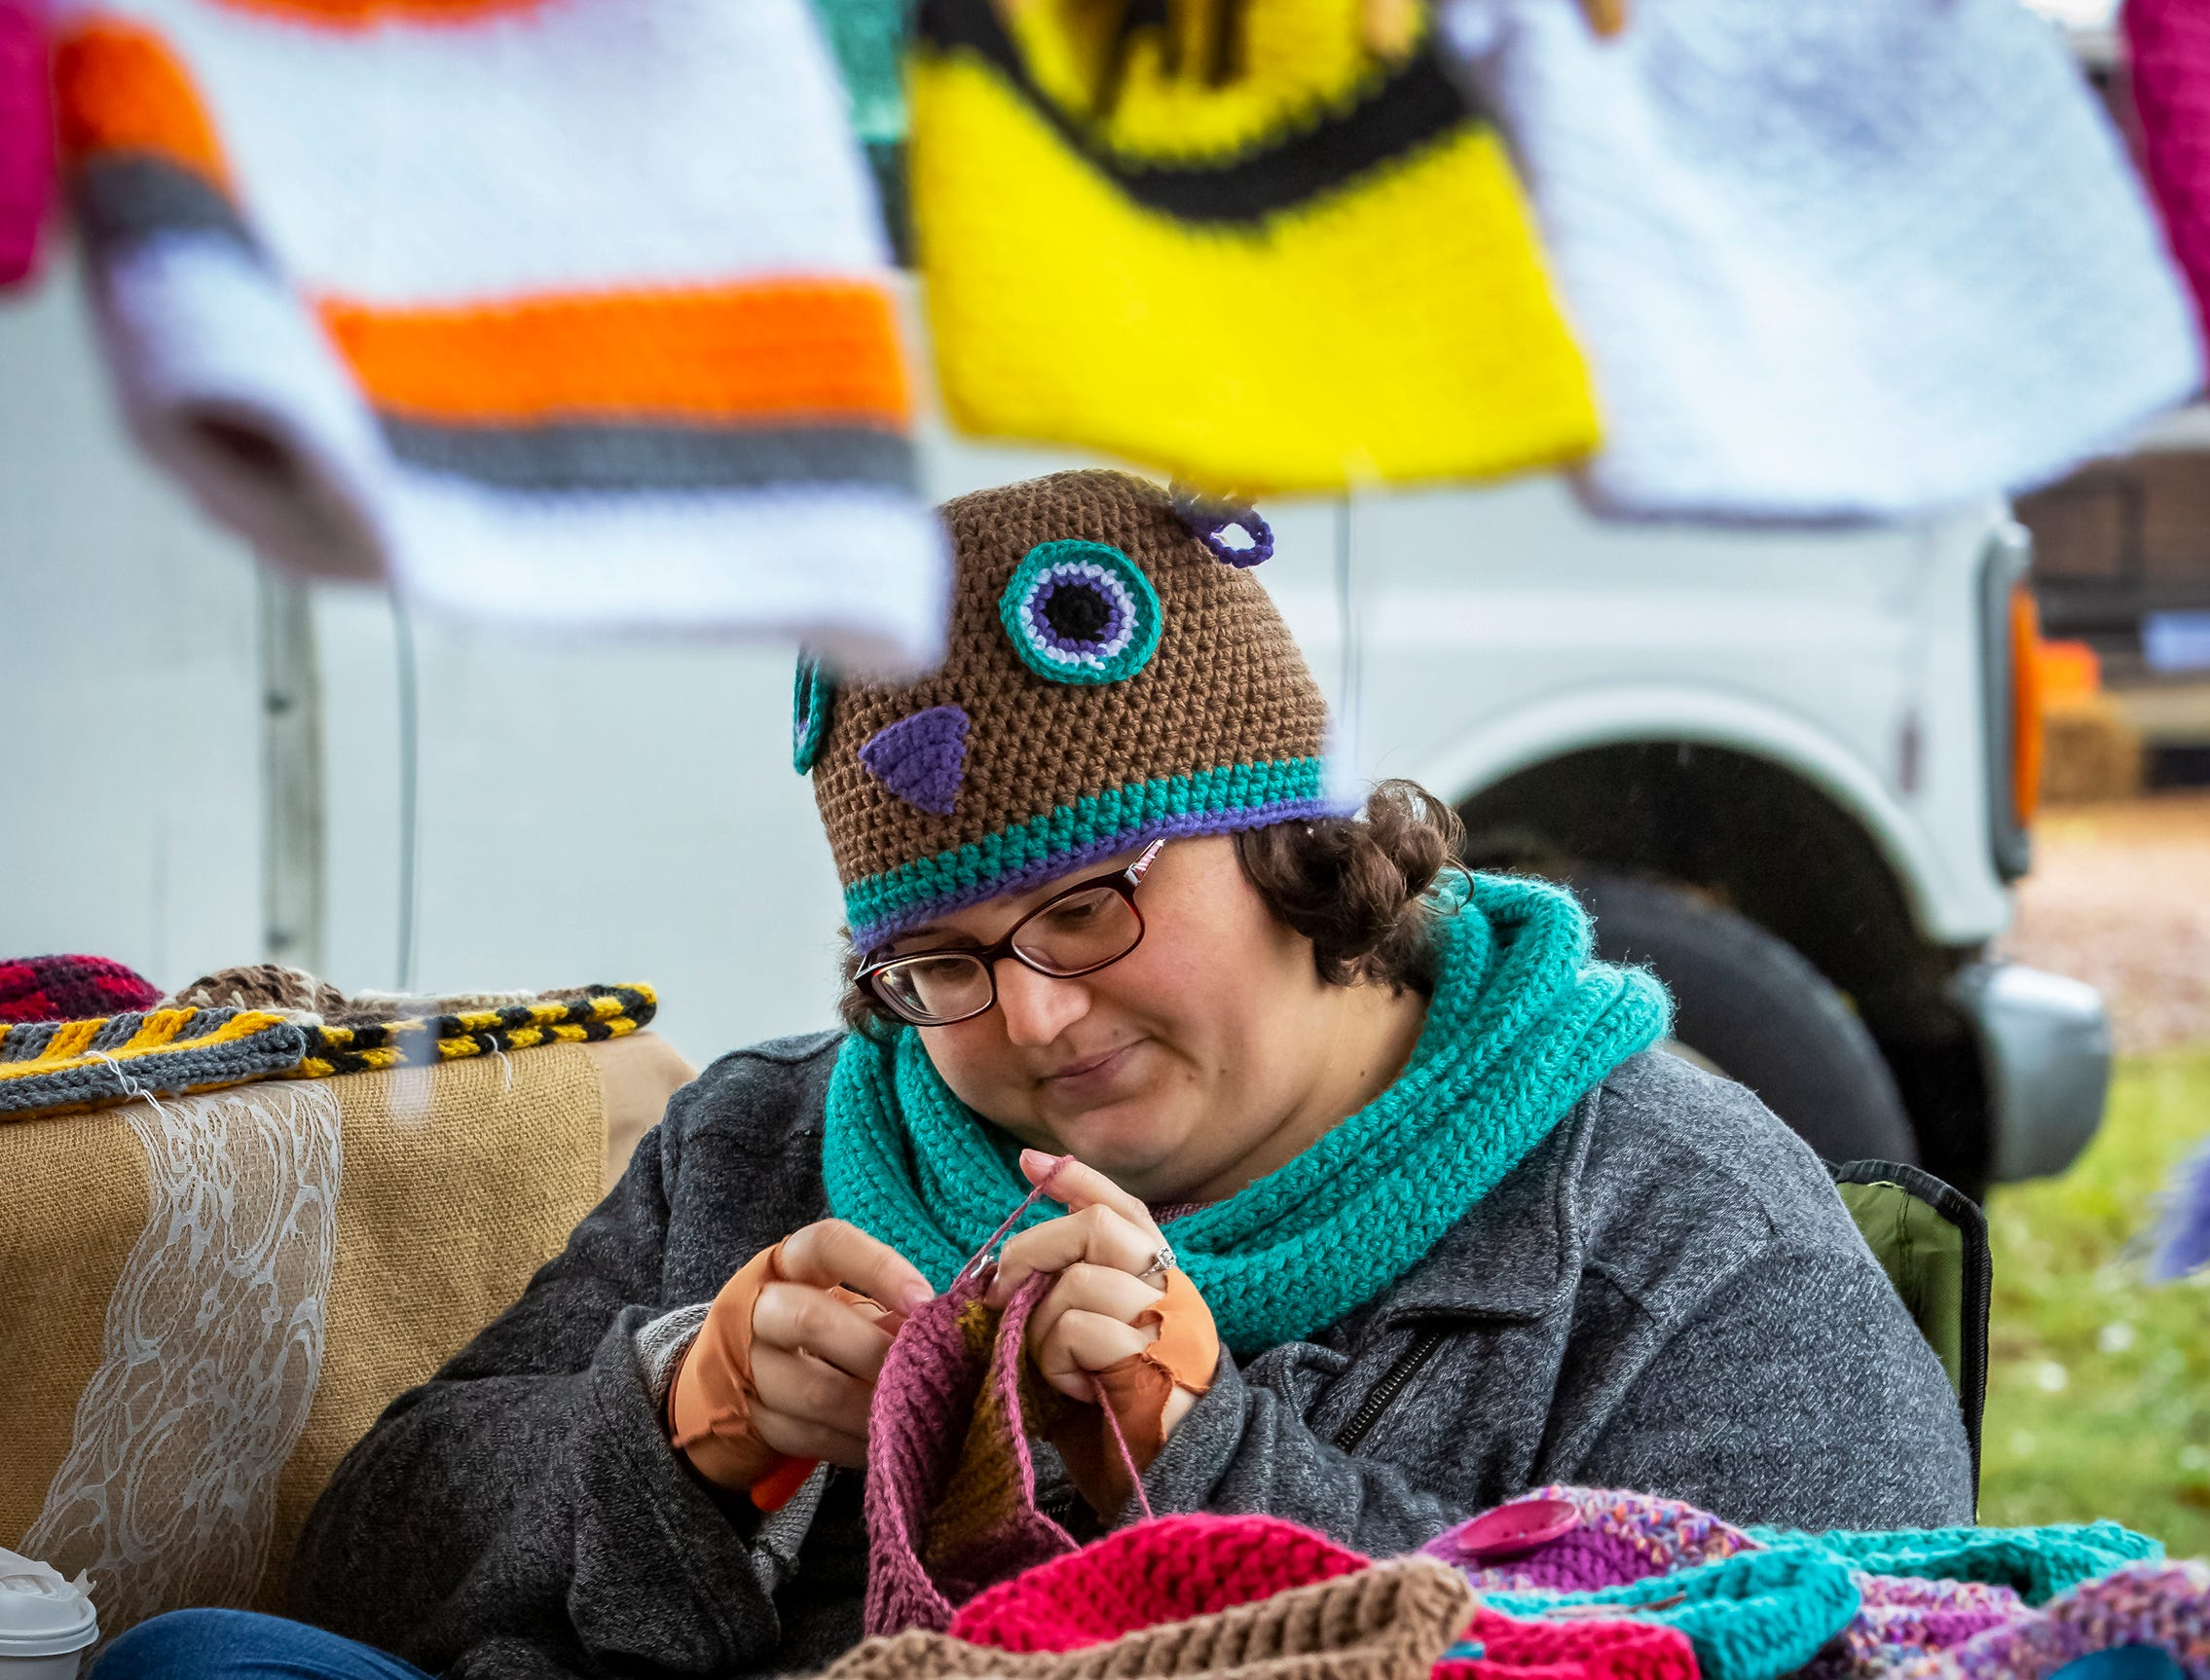 Kimberly McCall knits another hat at her booth at the 43rd annual Harvest Days celebration held at Cannonsburgh Villiage.